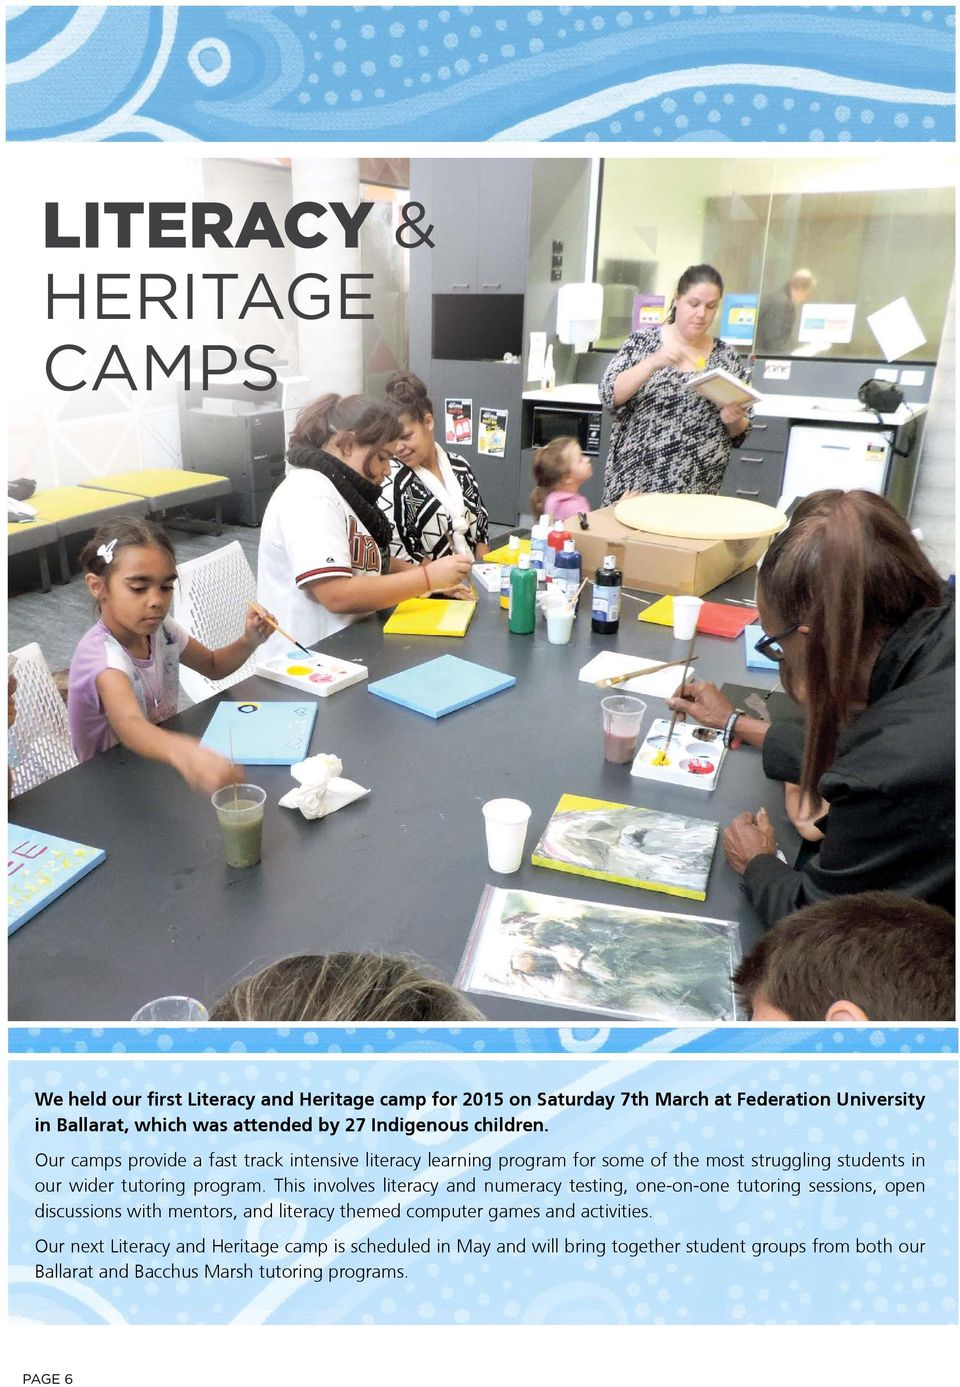 Our camps provide a fast track intensive literacy learning program for some of the most struggling students in our wider tutoring program.